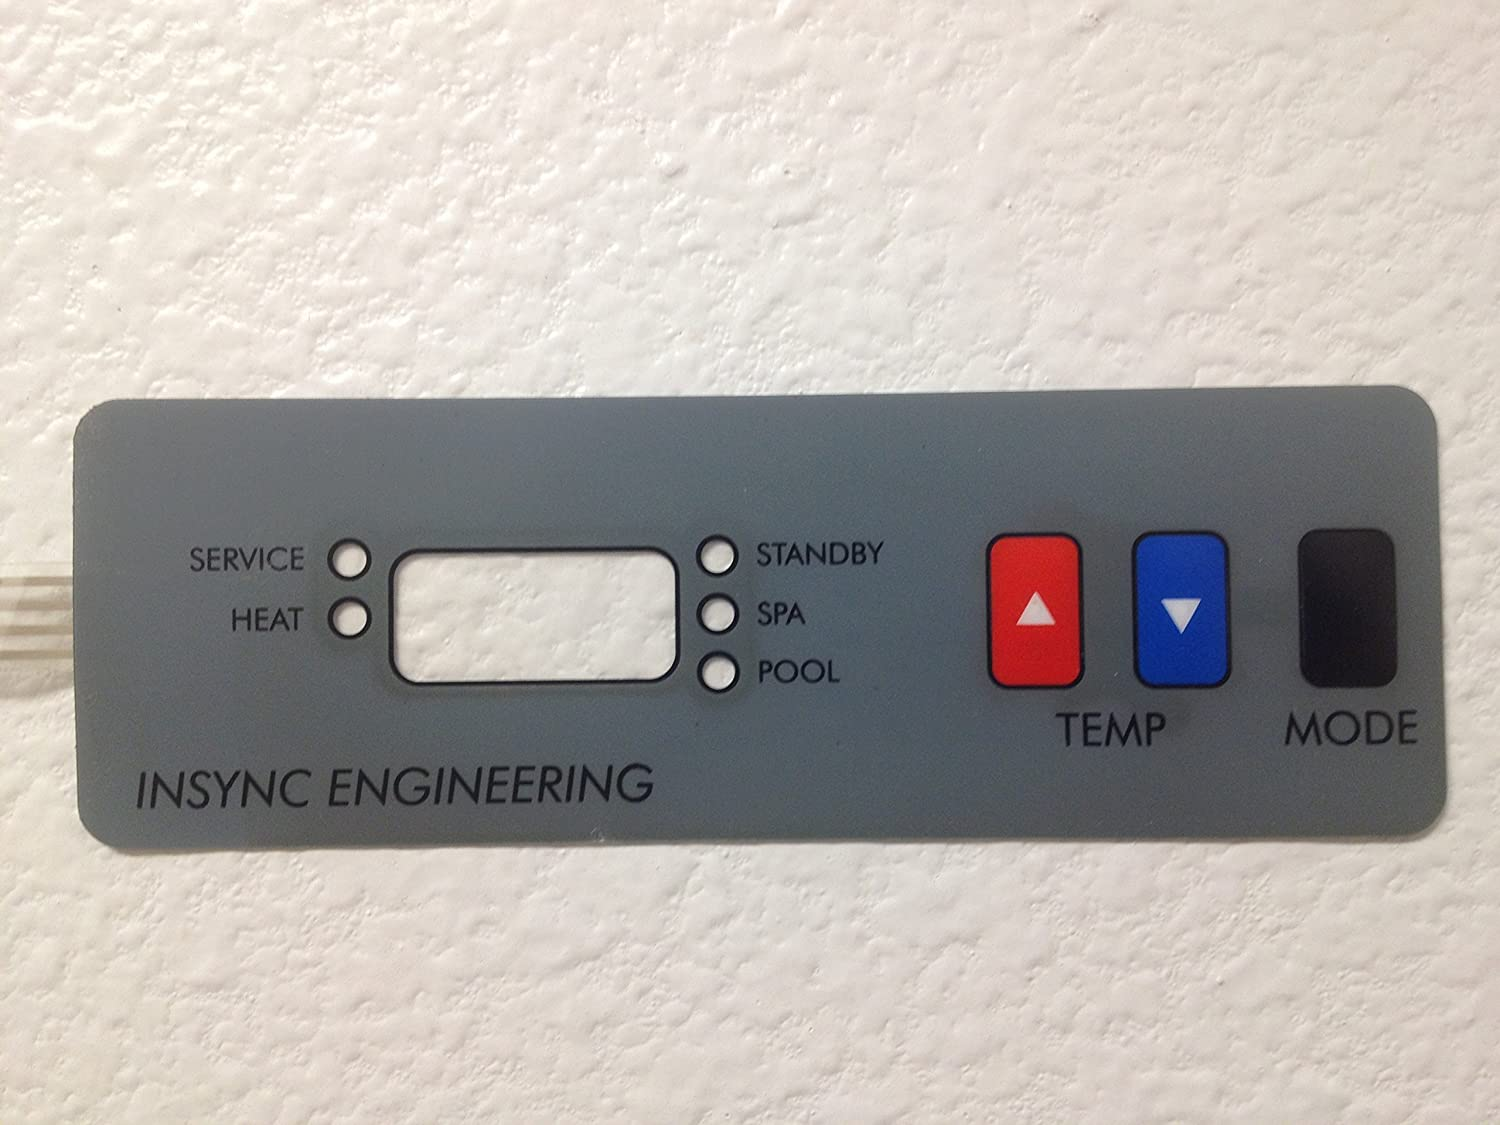 Amazon.com : COMPATIBLE WITH ALL HAYWARD H SERIES POOL HEATER REPLACEMENT  CONTROL PANEL KEYPAD MEMBRANE SWITCH. INSYNC ENGINEERING DESIGNED AND  MANUFACTURED ...